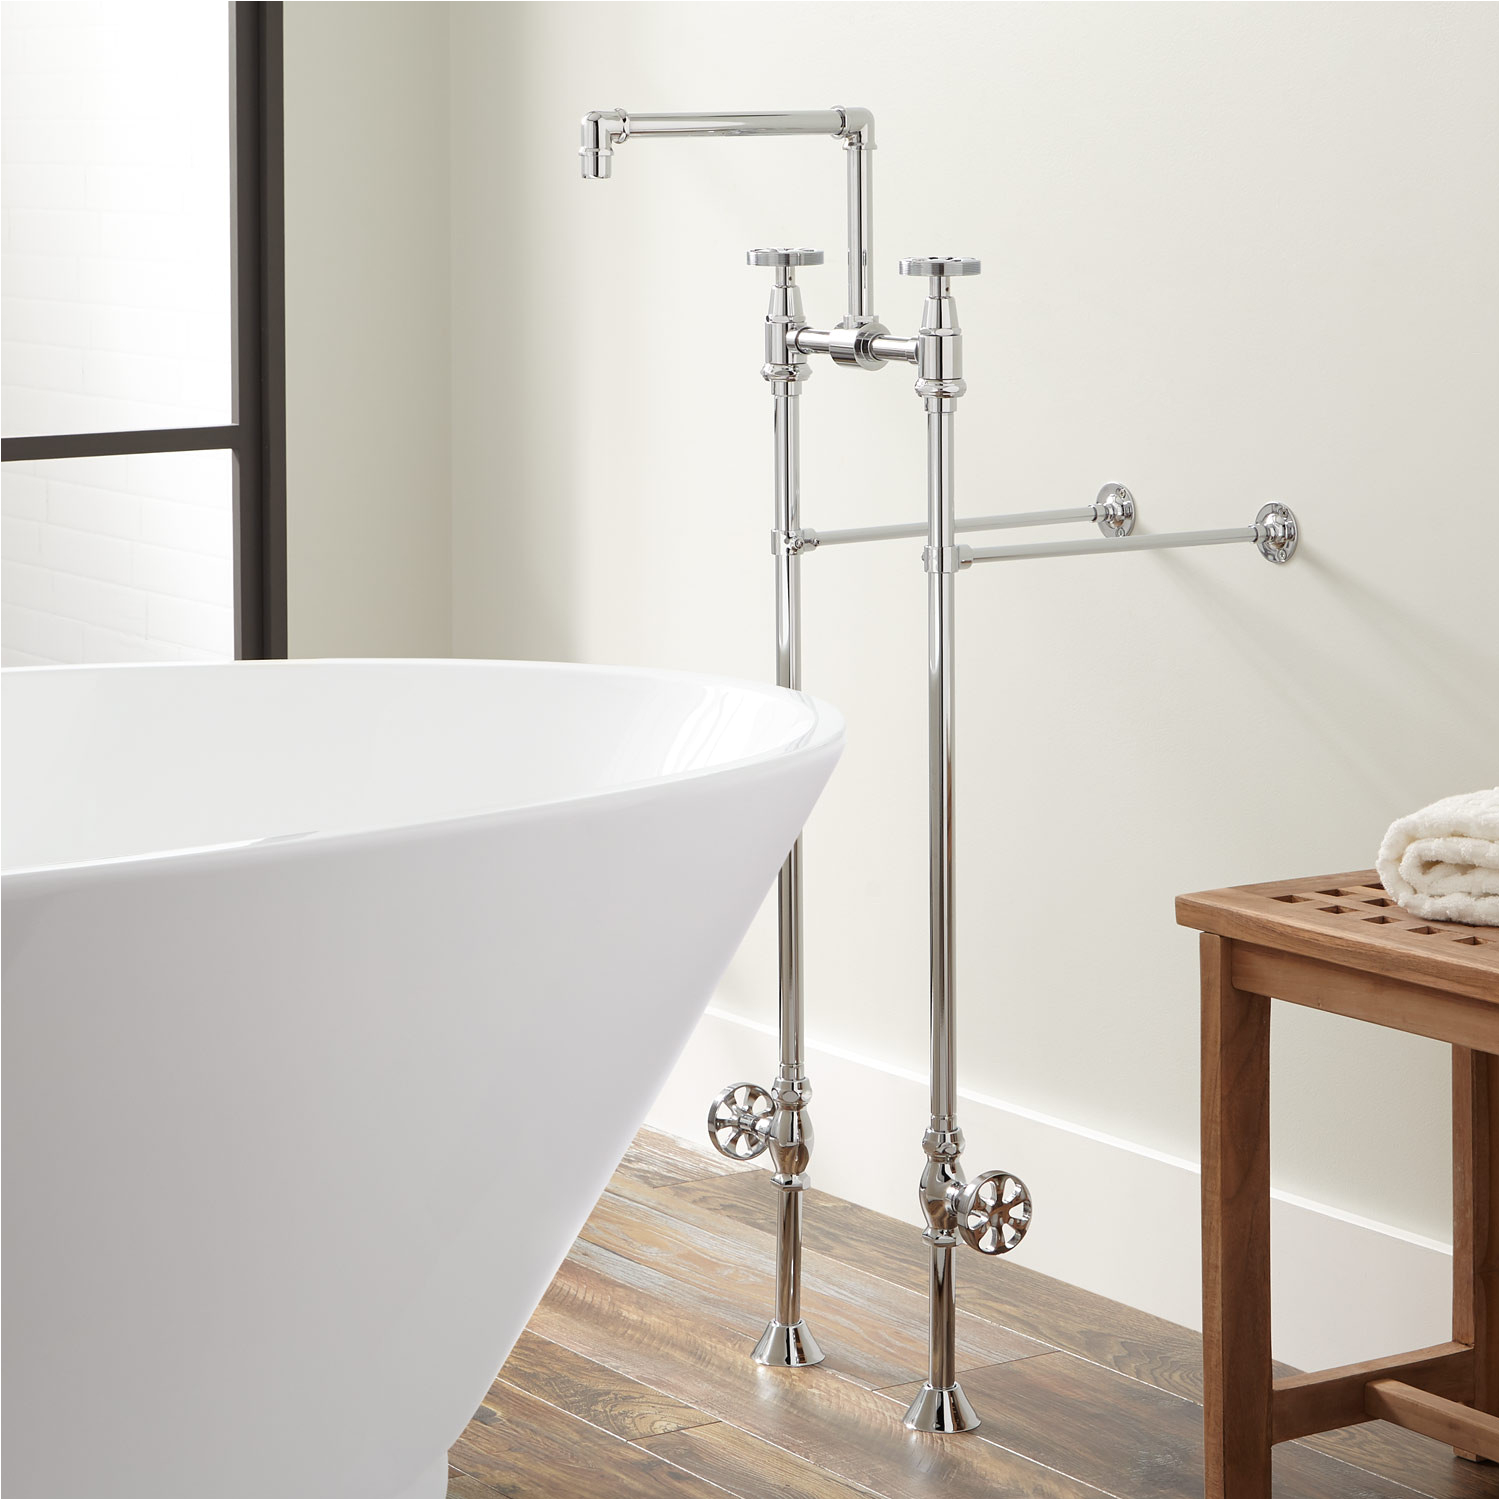 Freestanding Tub Faucets with Valve Edison Freestanding Tub Faucet with Shutoff Valves Bathroom